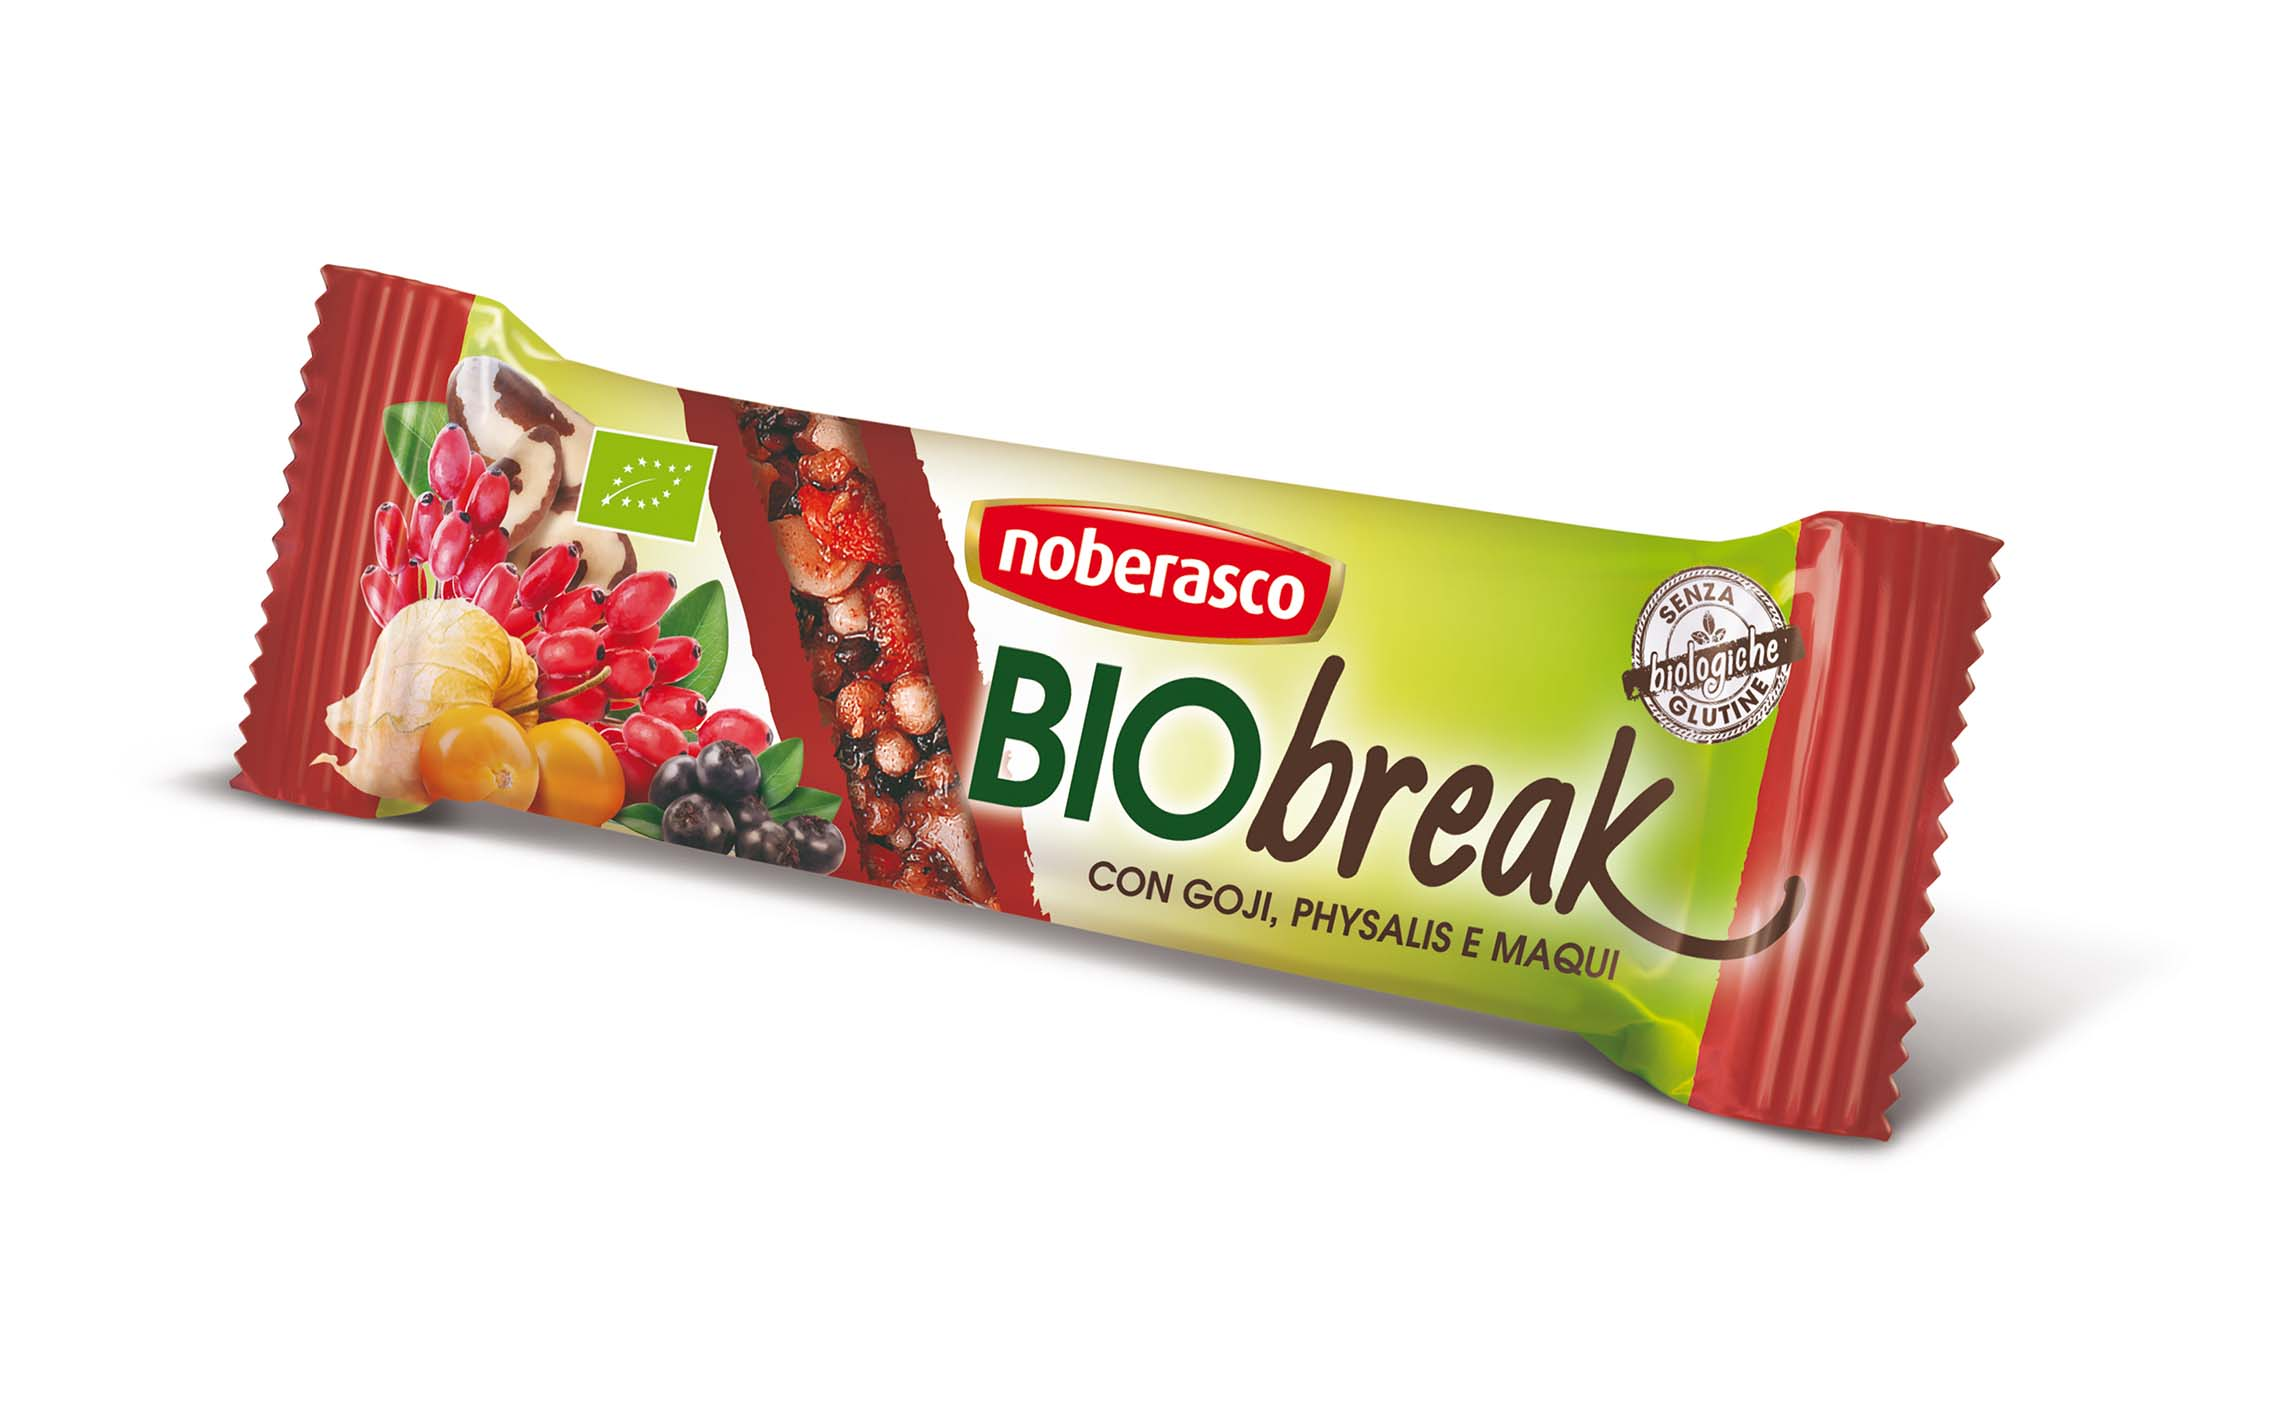 BioBreak Noberasco barrette